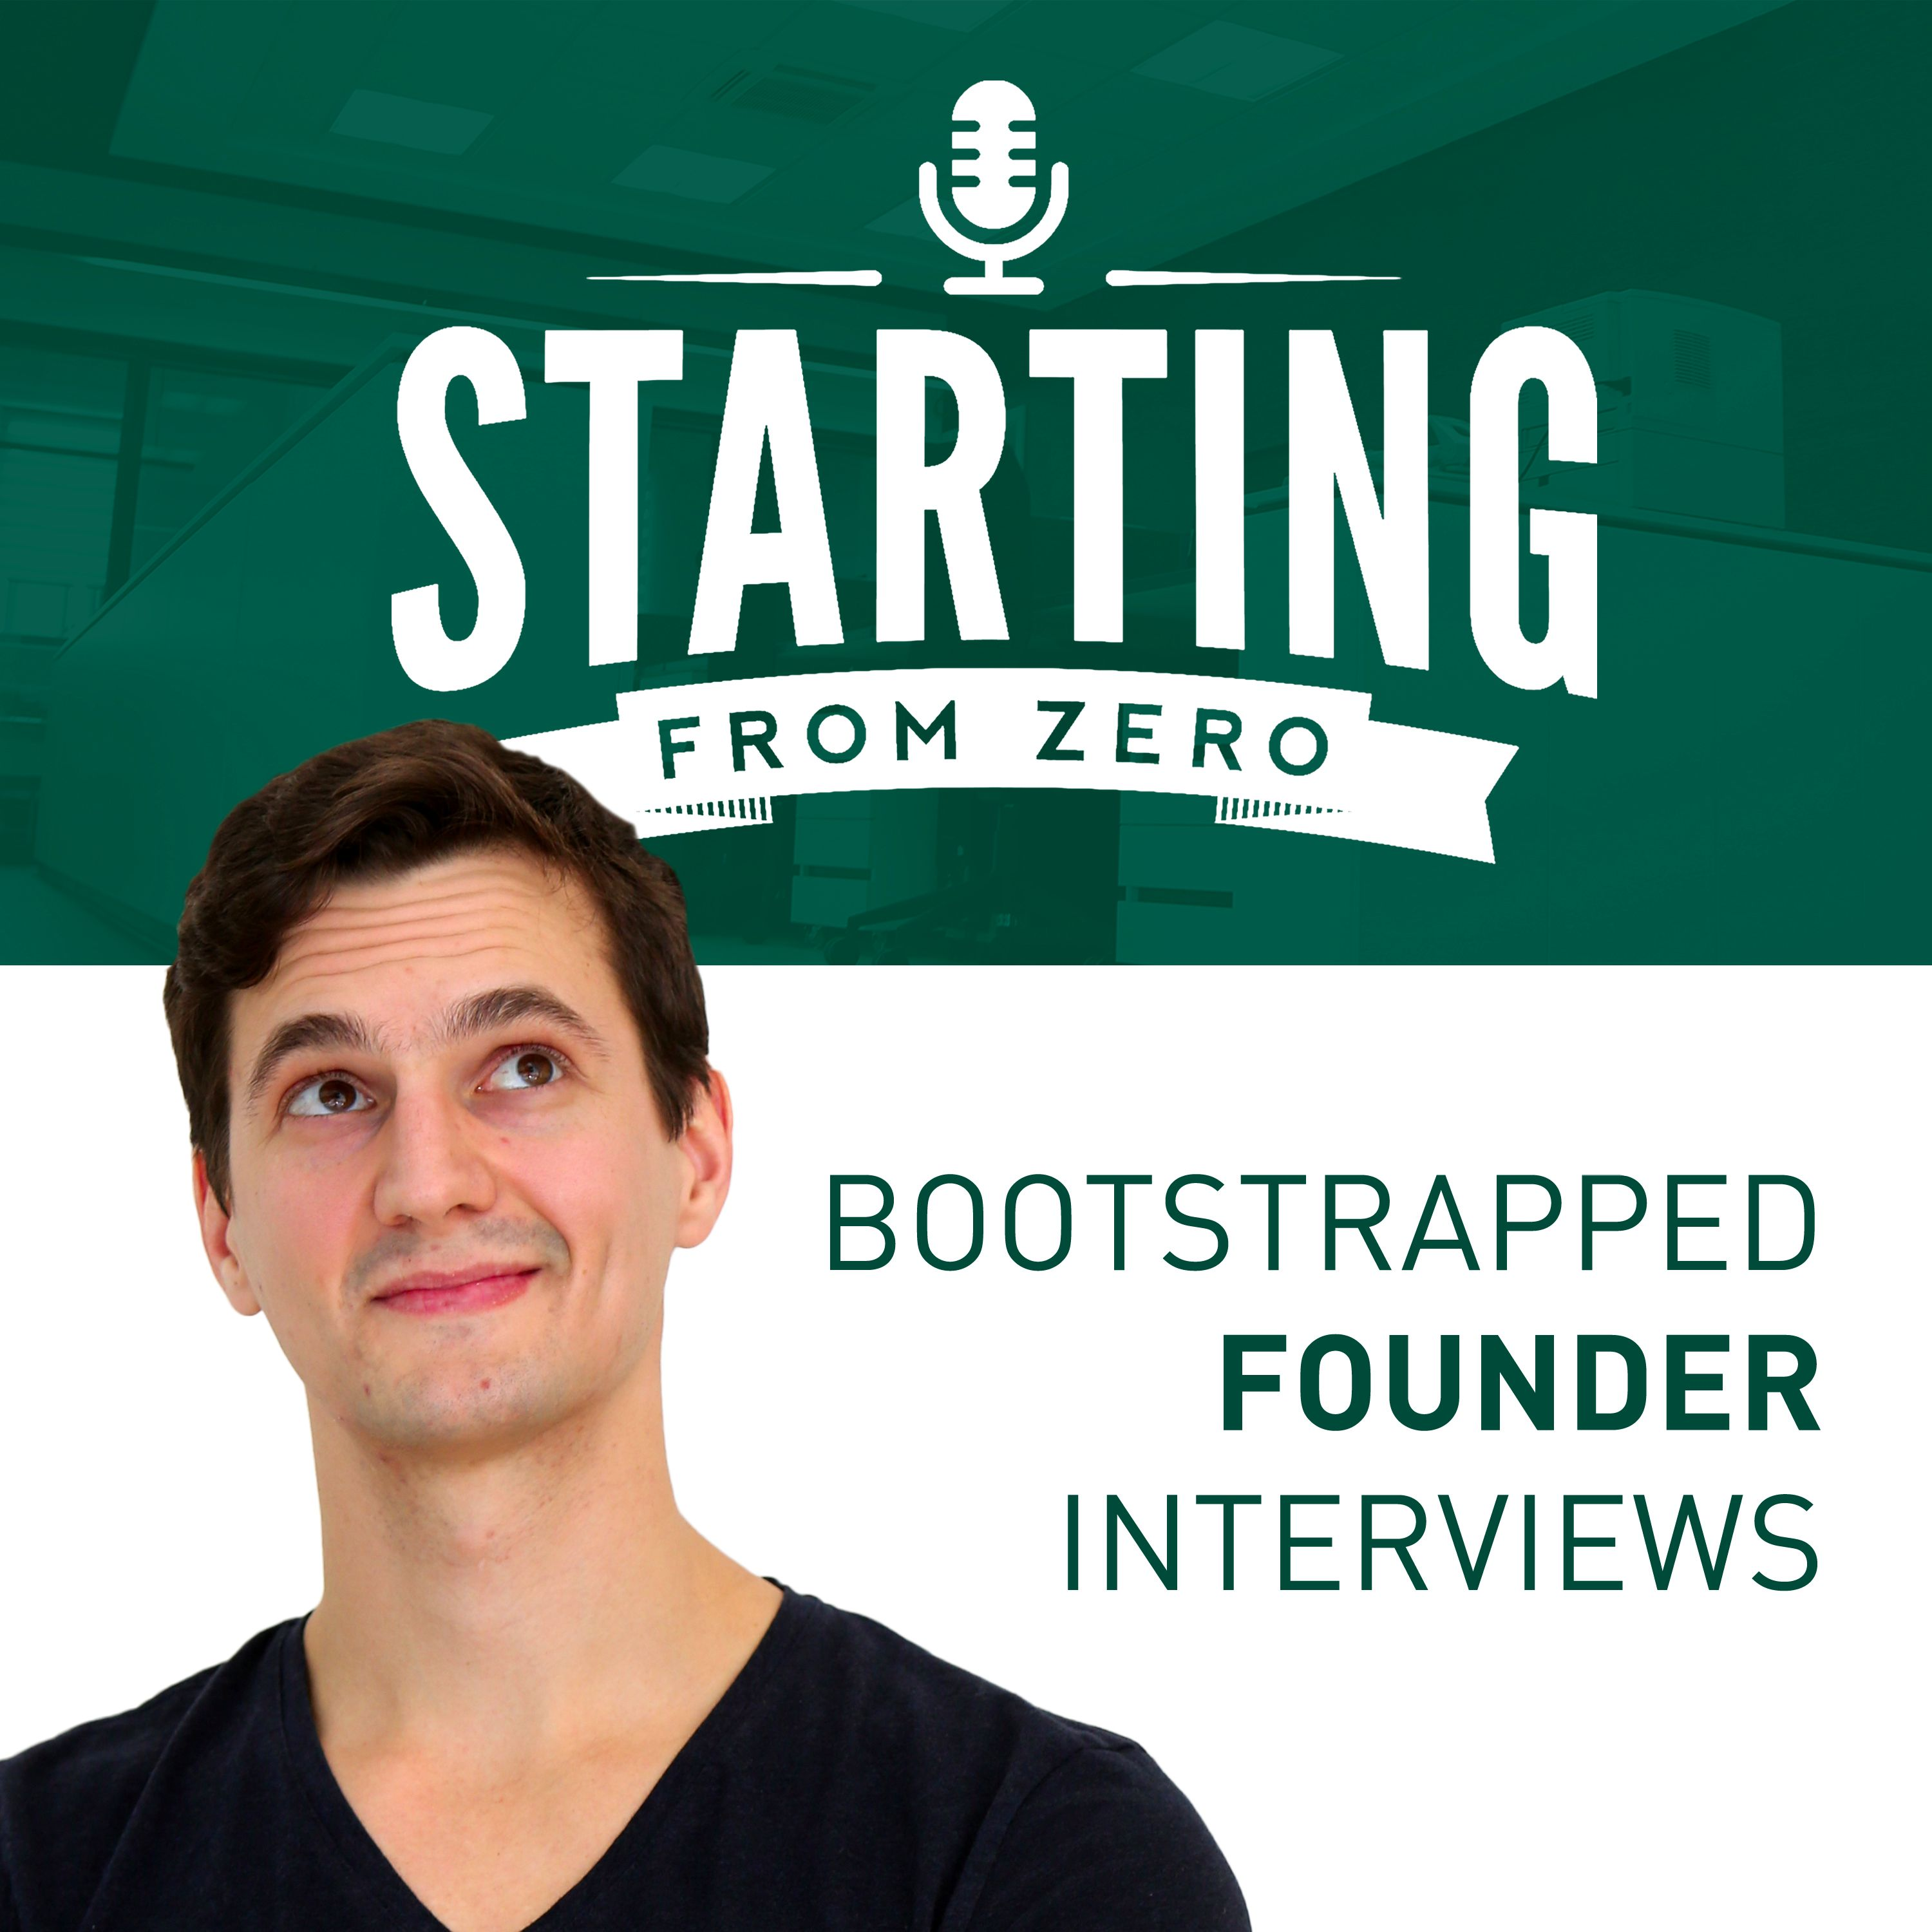 StartingFromZero - Self-Funded Founder Interviews